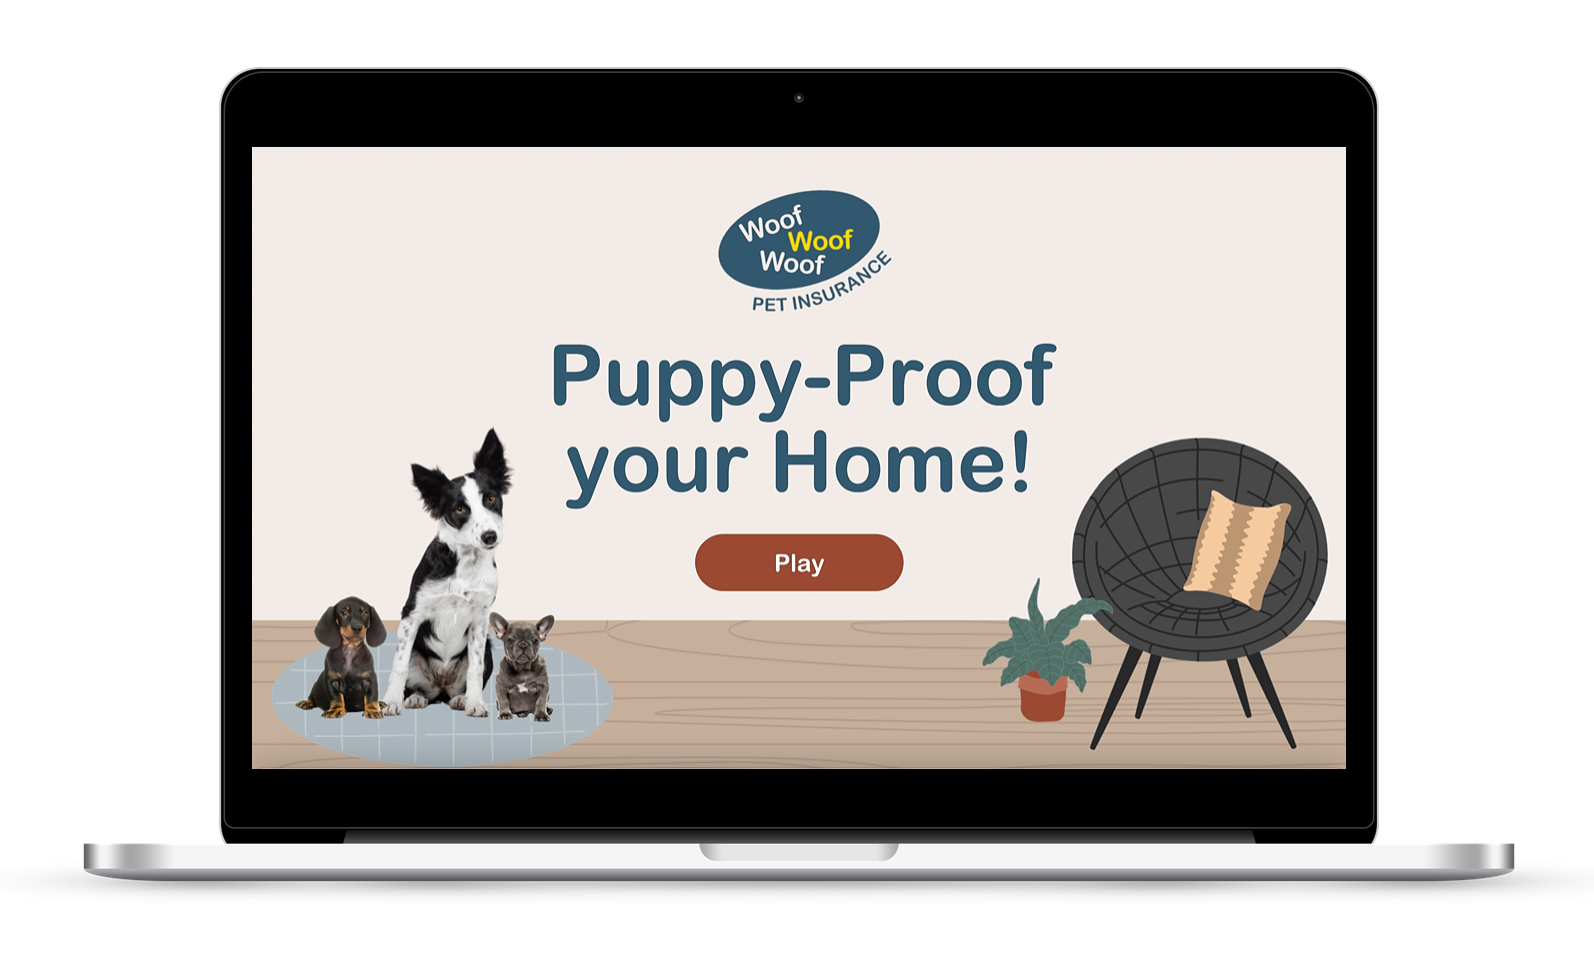 Interactive gamified elearning to puppy proof your home built in Storyline.